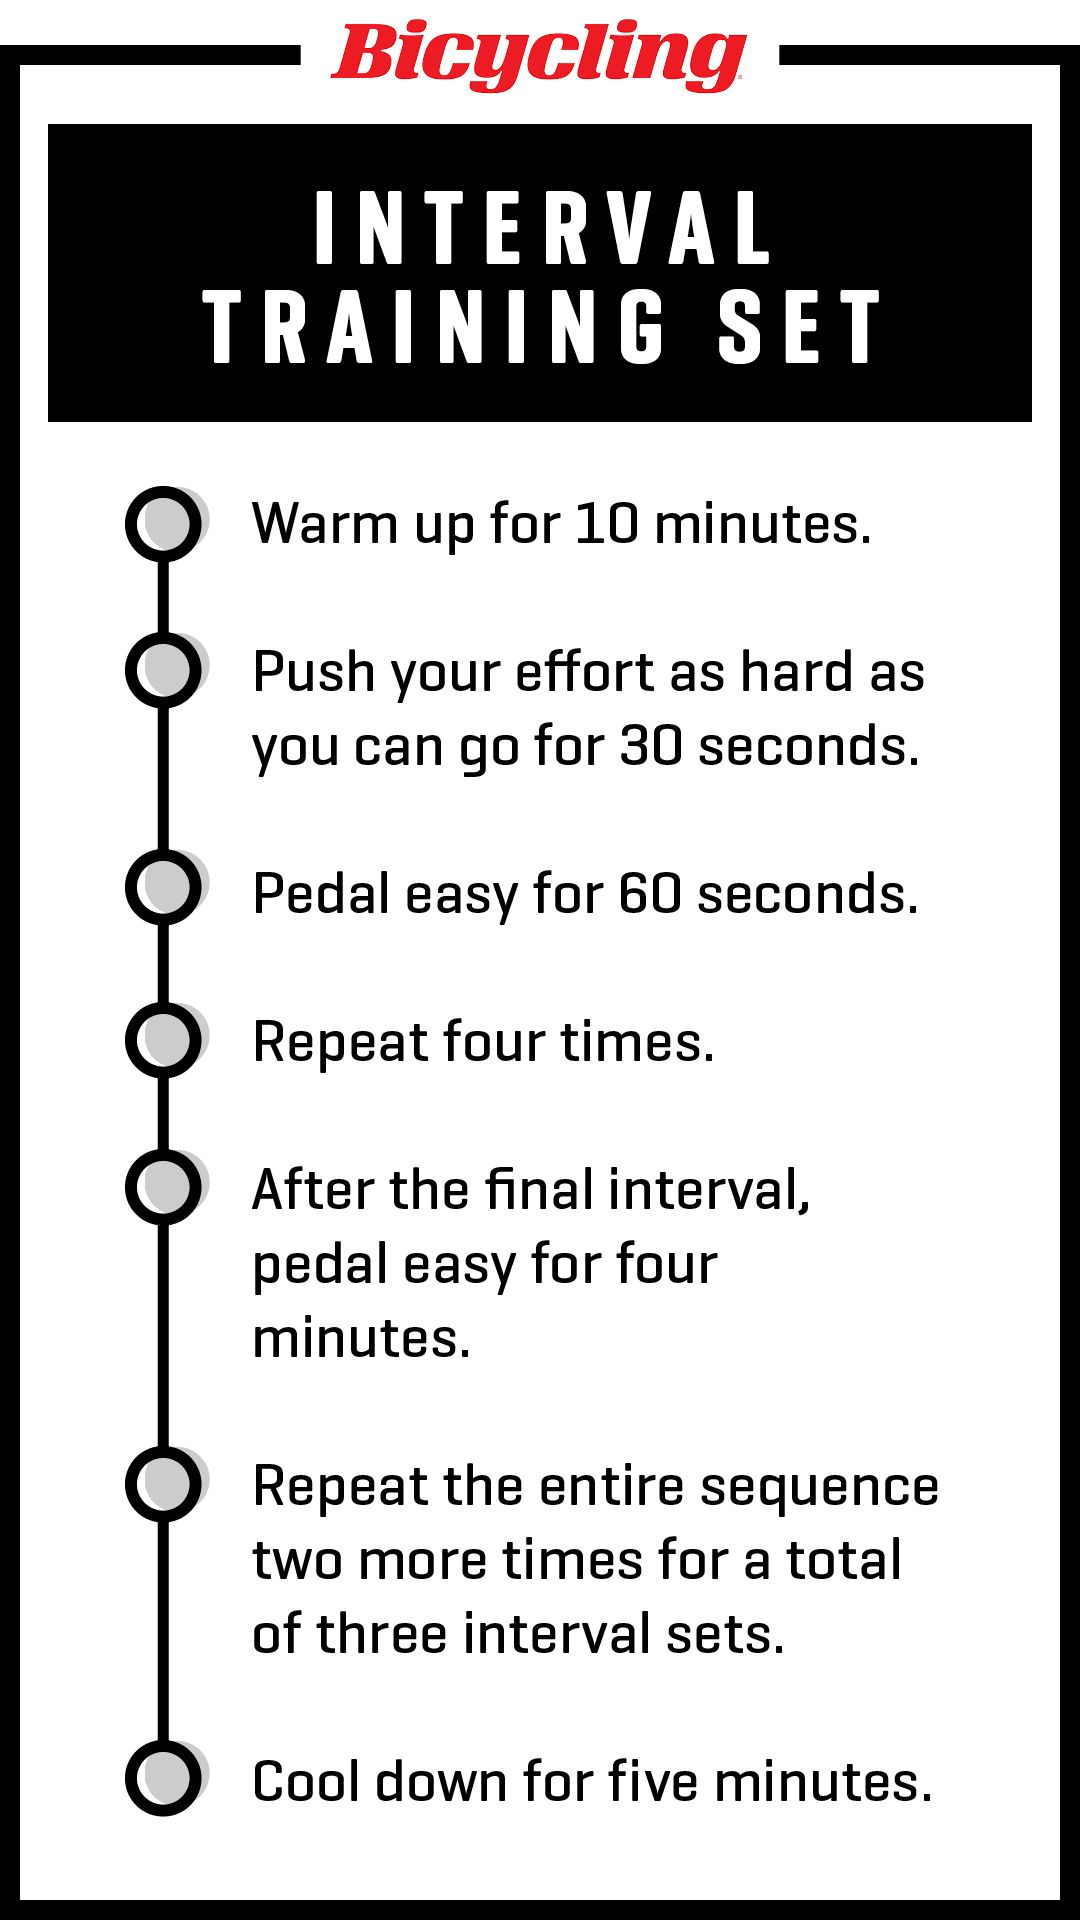 hiit workouts for cyclists best hiit workouts45 Minute Circuit Workout 3 Sets Of 15 Minutes Each And You39re Done #15